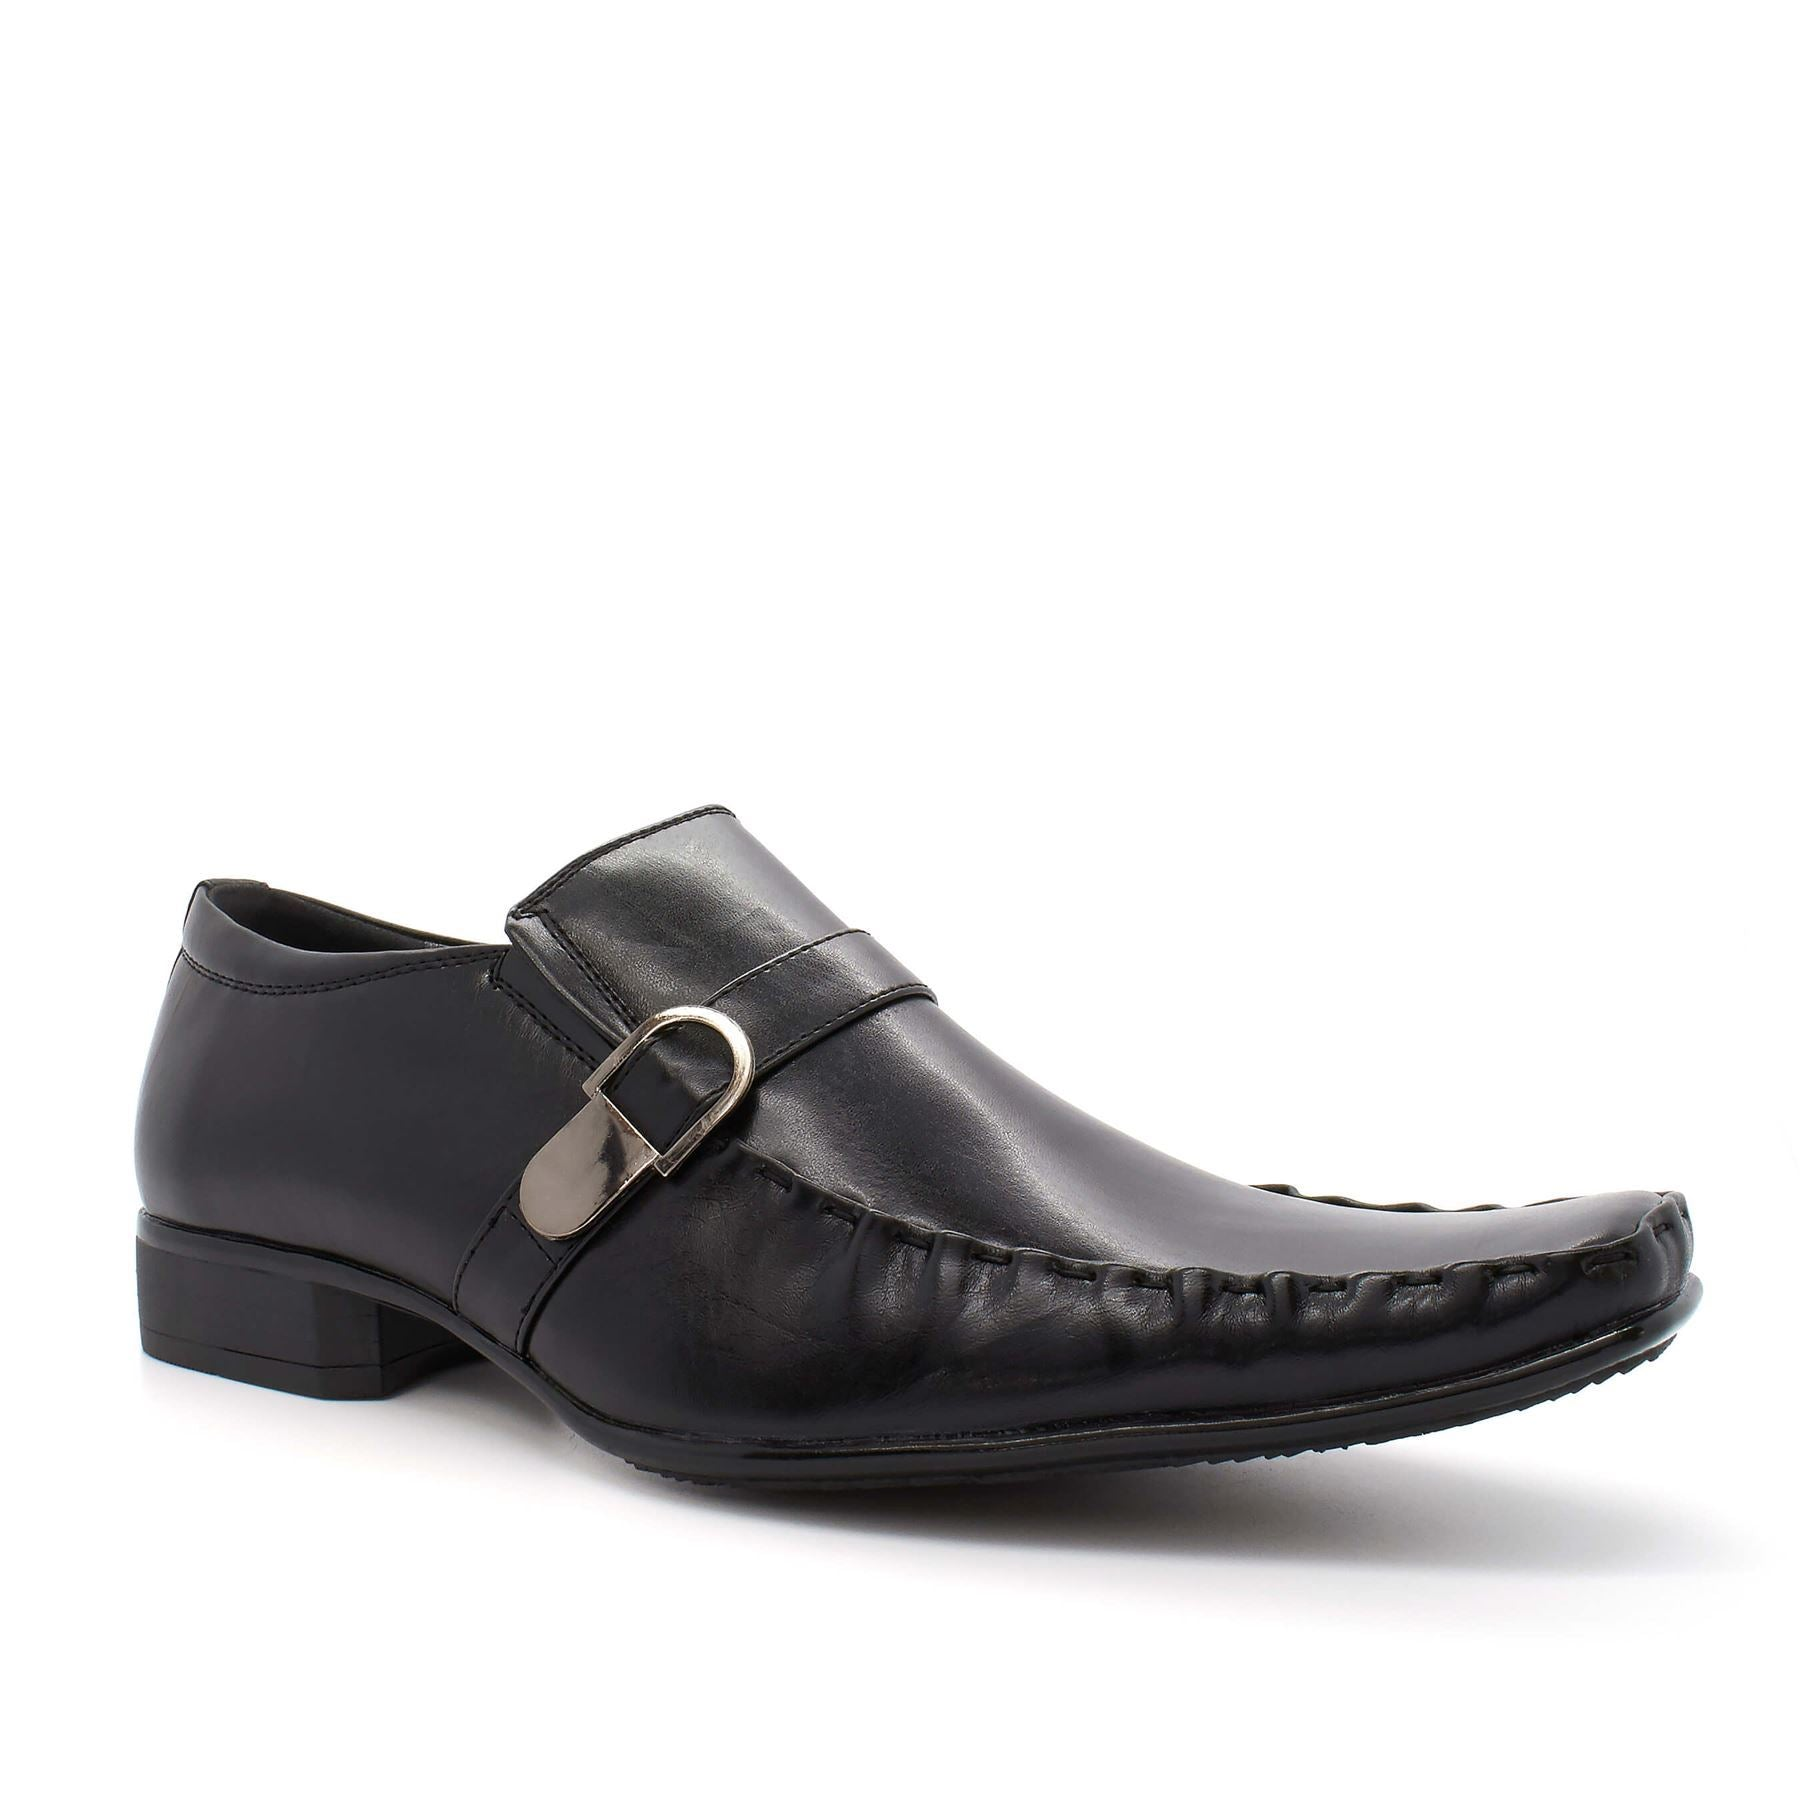 Black Leather Look Buckle Shoes